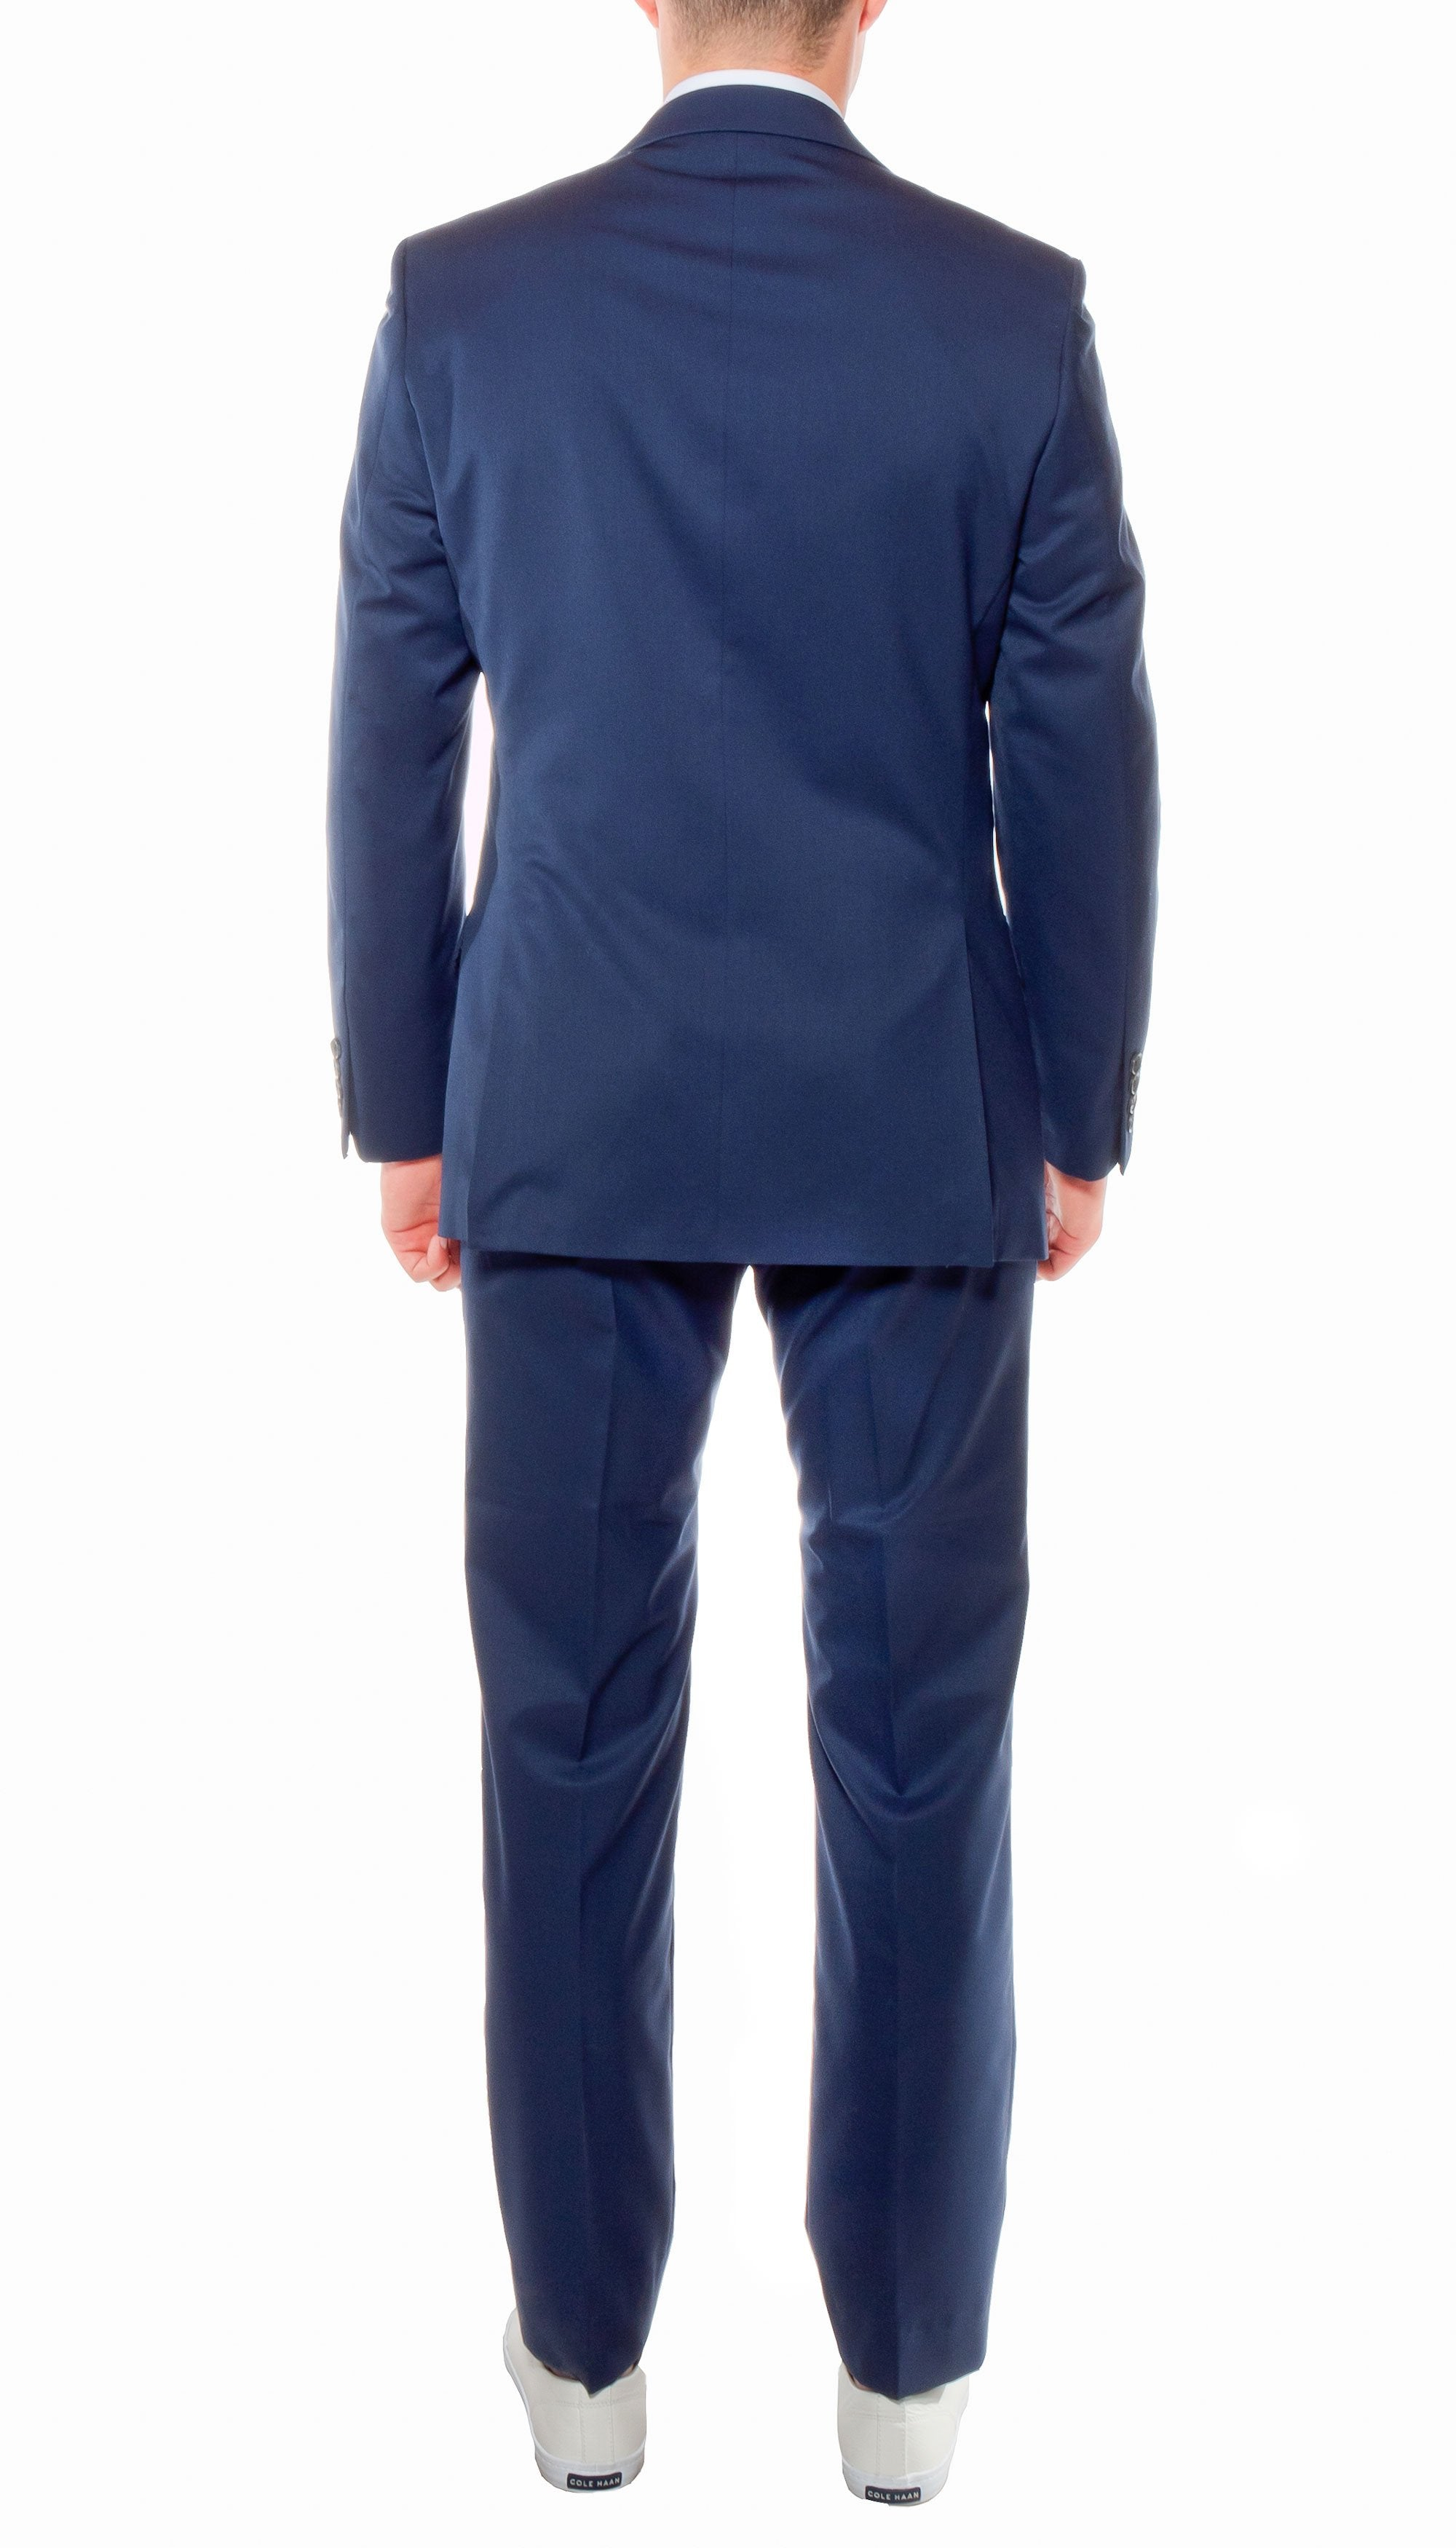 Ferrecci Mens Savannah Navy Slim Fit 3pc Suit - Giorgio's Menswear